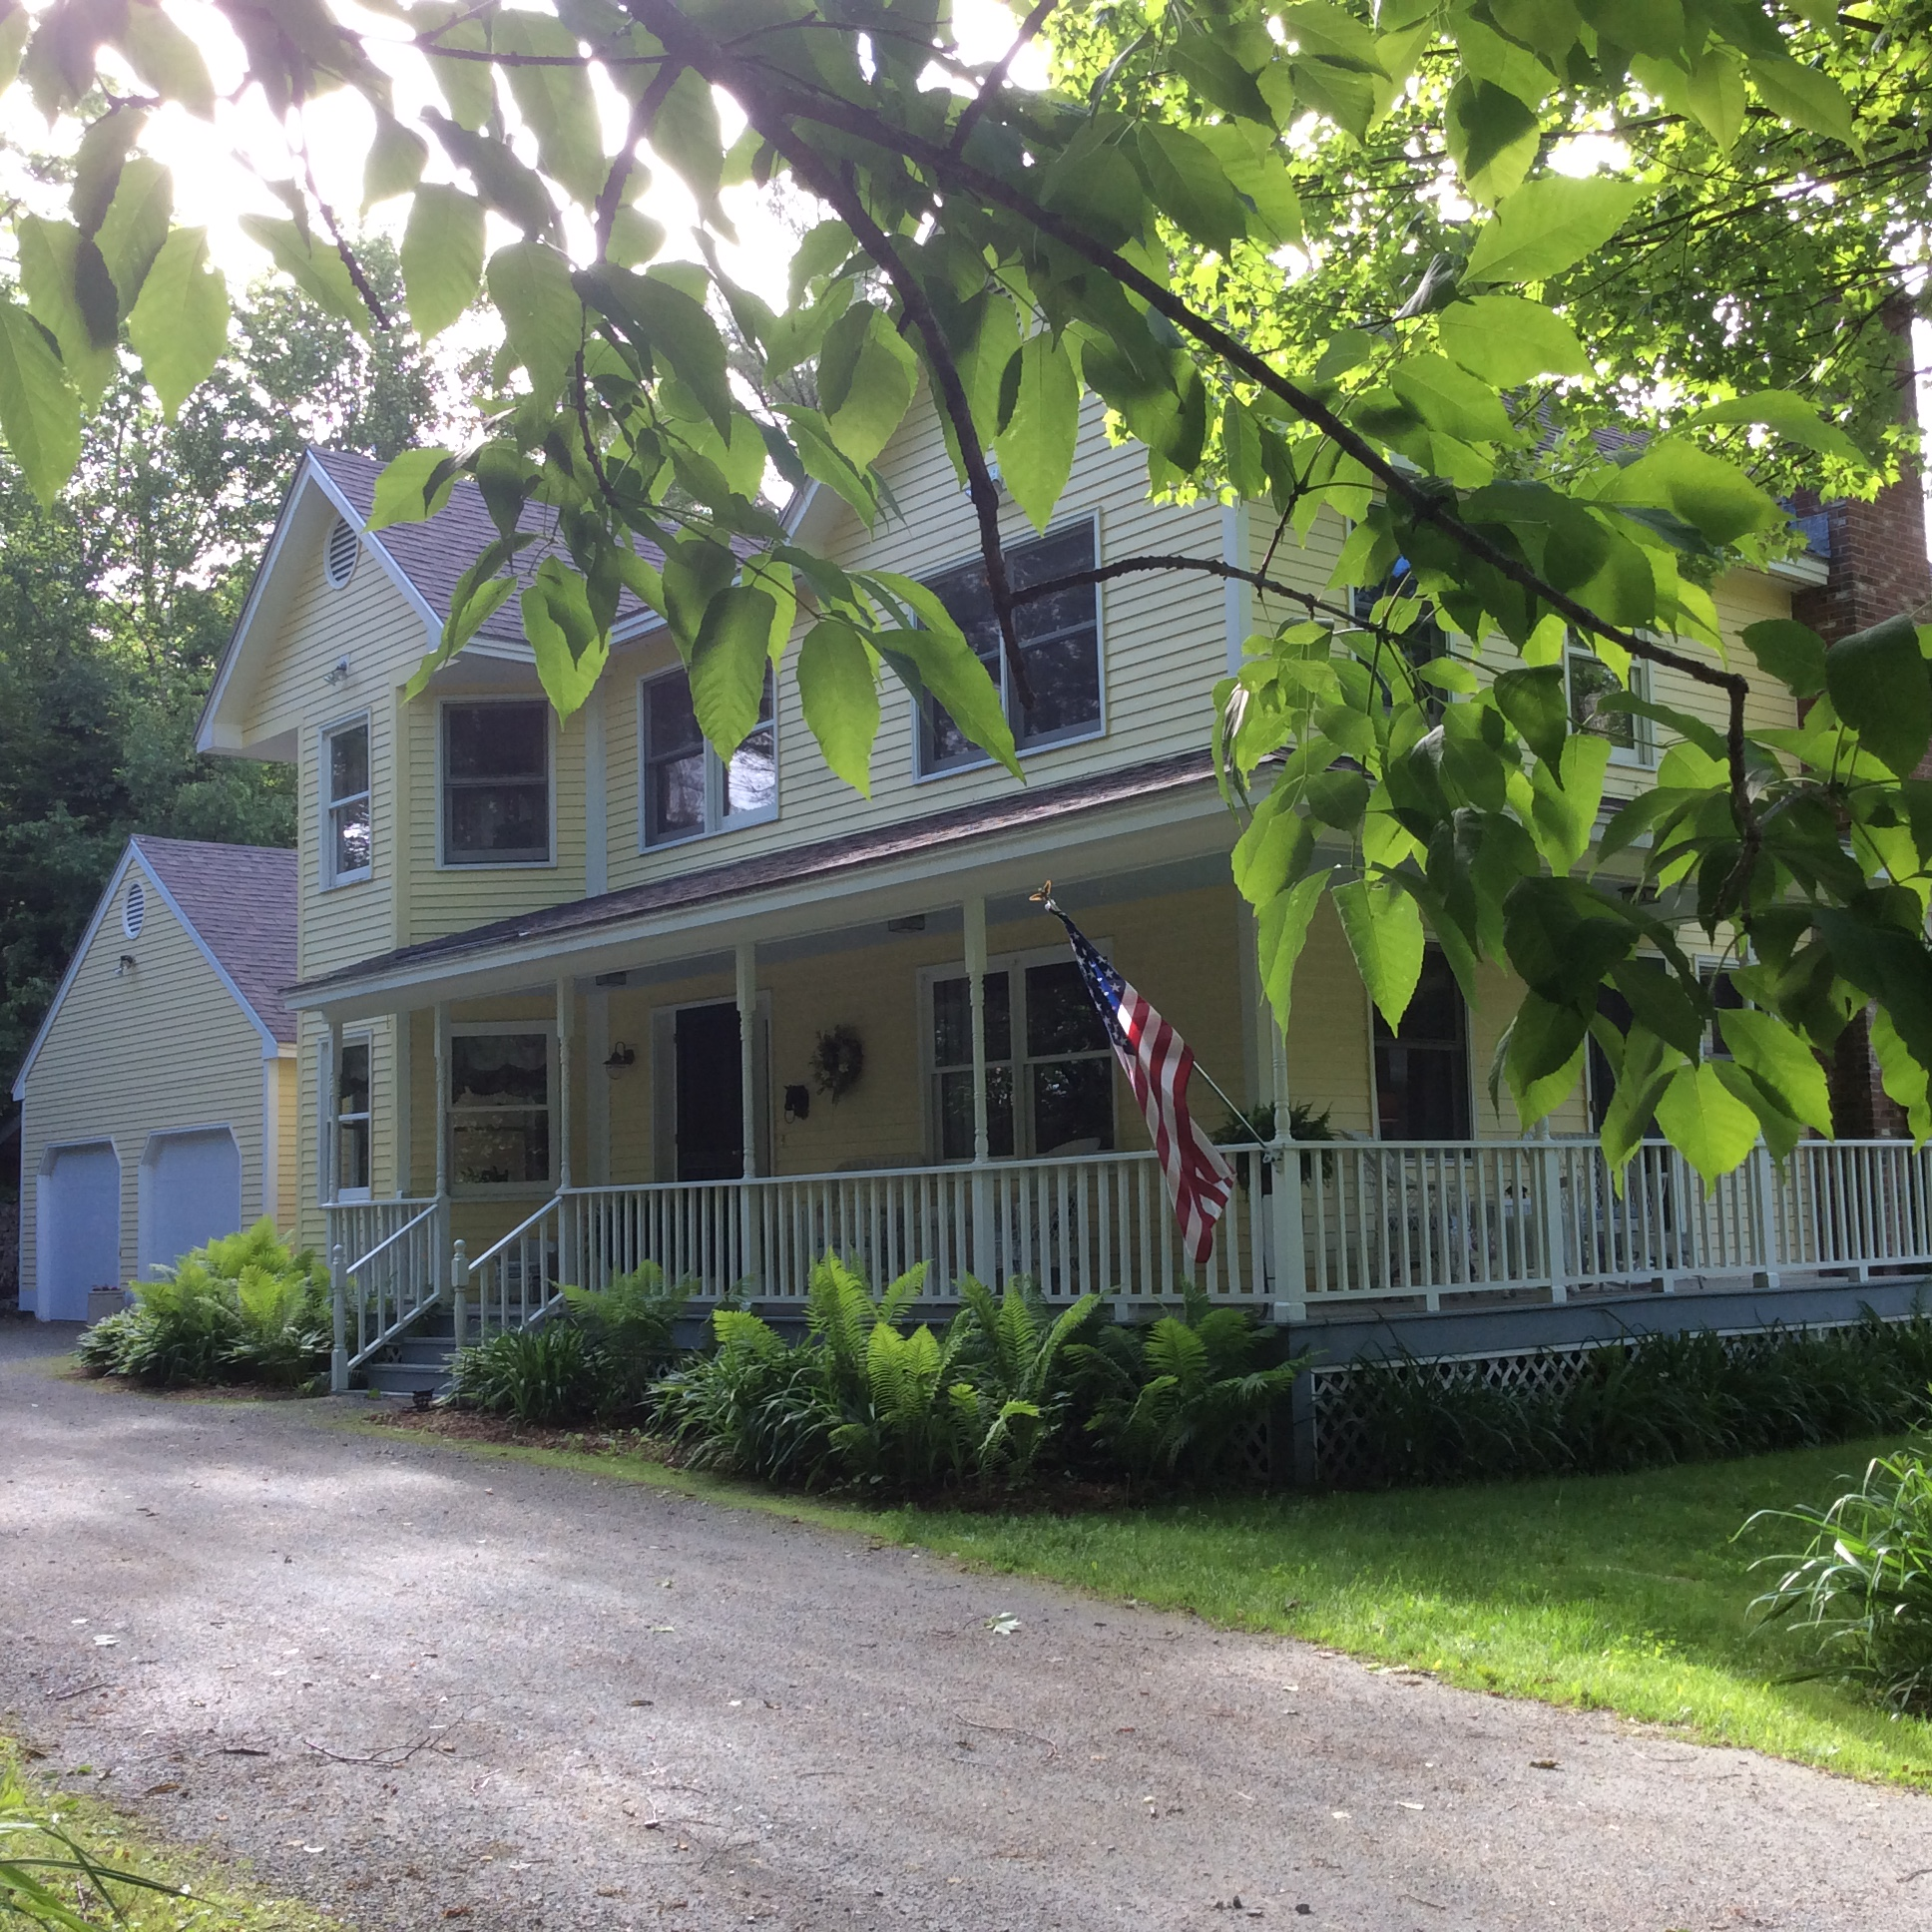 Single Family Home for Sale at 31 Meadowbrook, Grantham Grantham, New Hampshire, 03753 United States